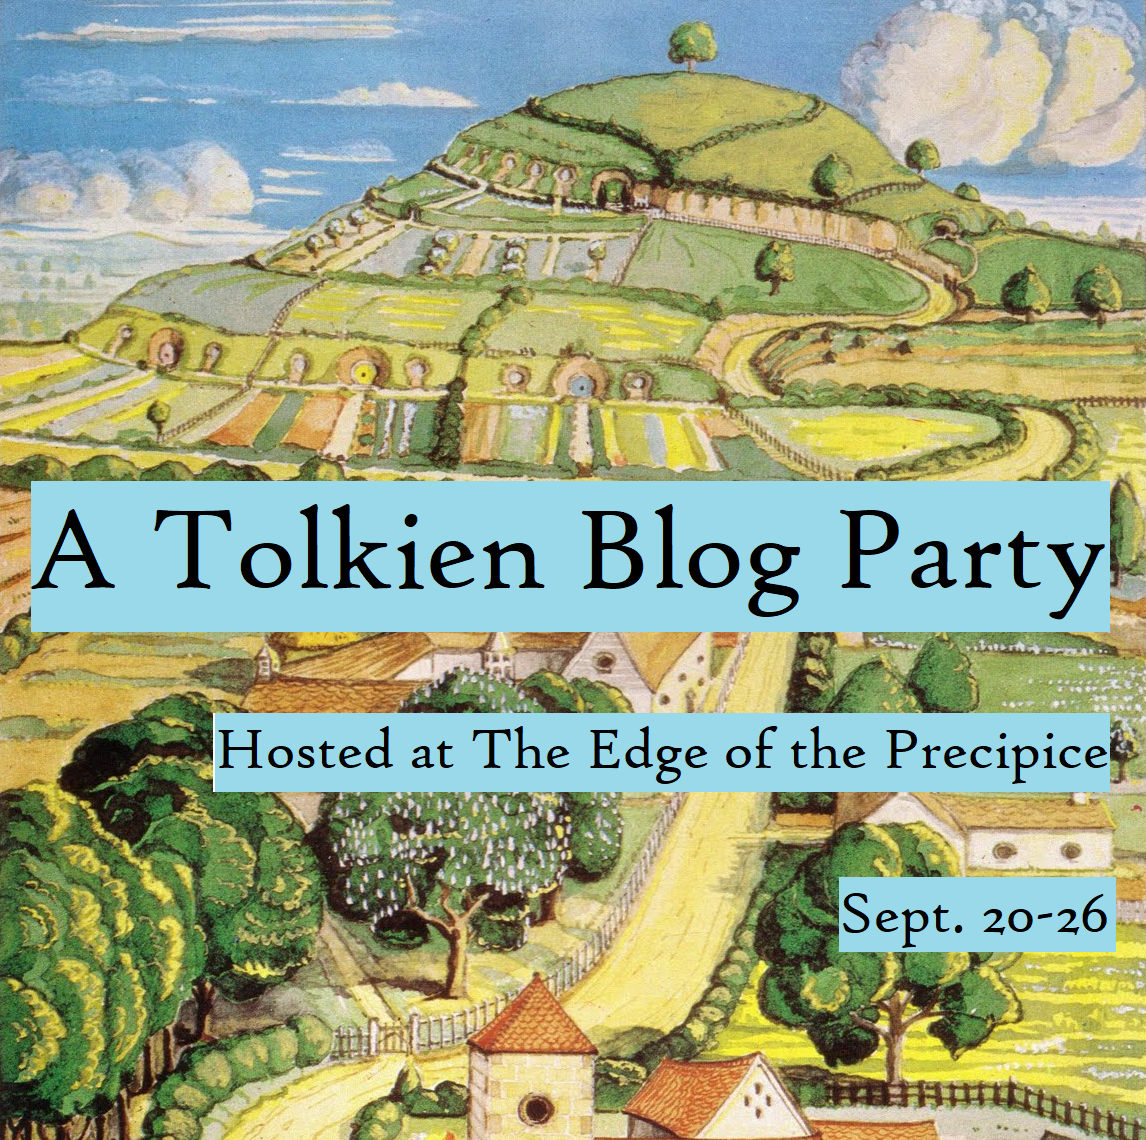 The 8th Annual Tolkien Blog Party